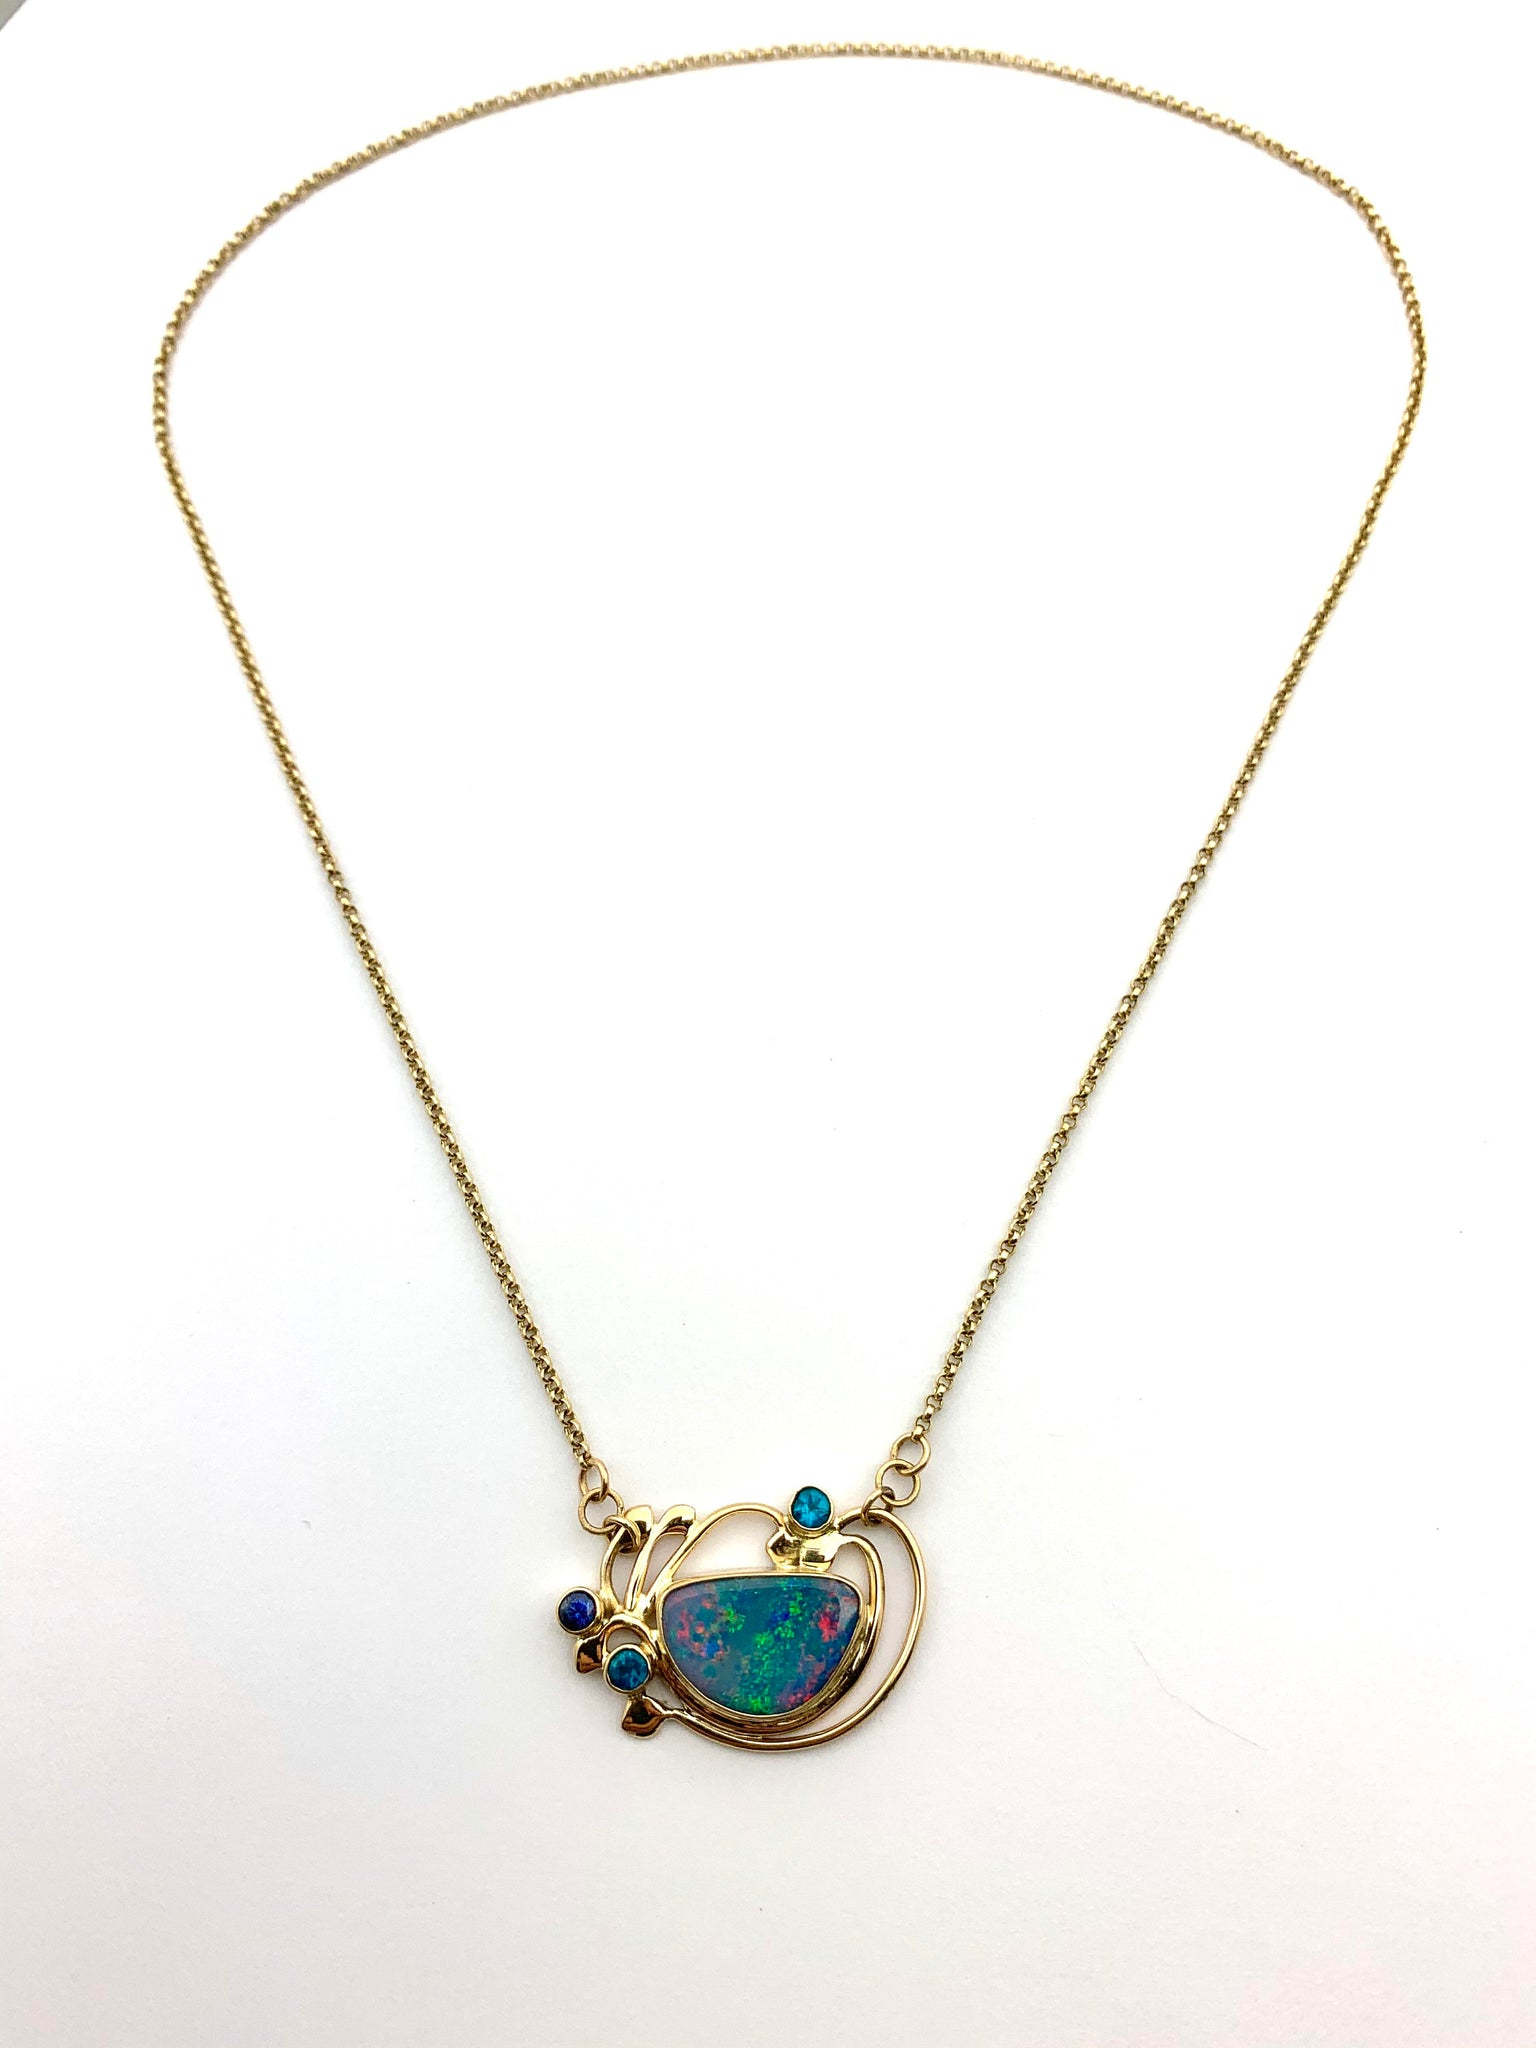 Australian Opal Necklace in 14k gold, Gold Solid Opal necklace with 14k chain, One of a kind Opal Necklace